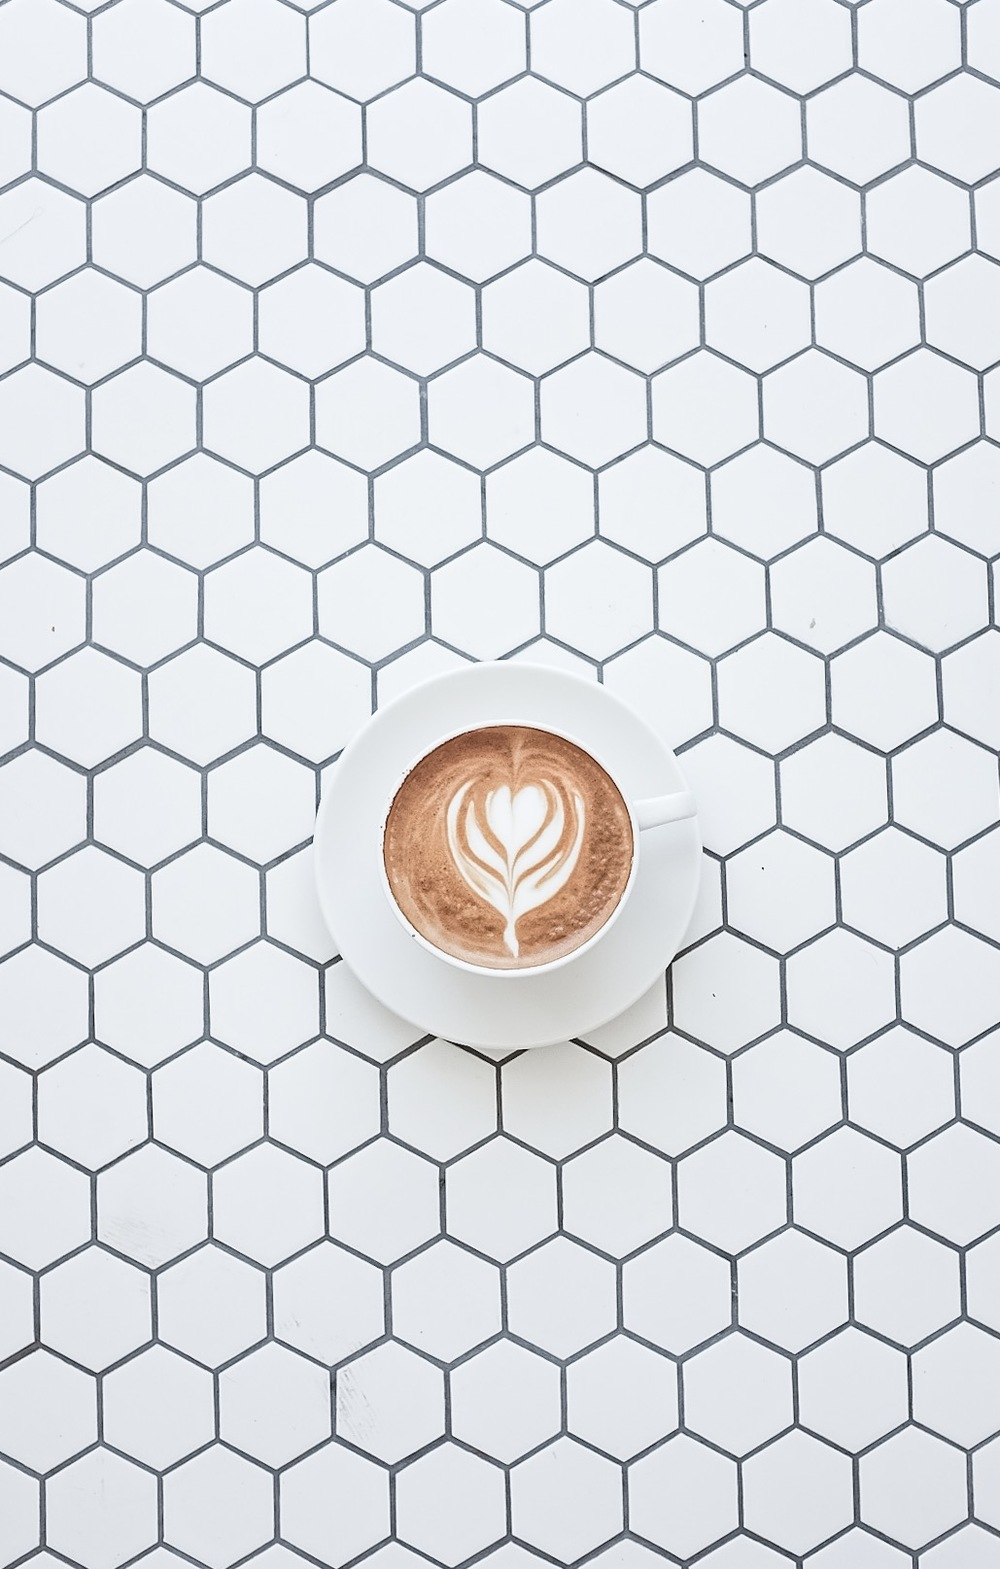 Nice latte art on pretty tiles.